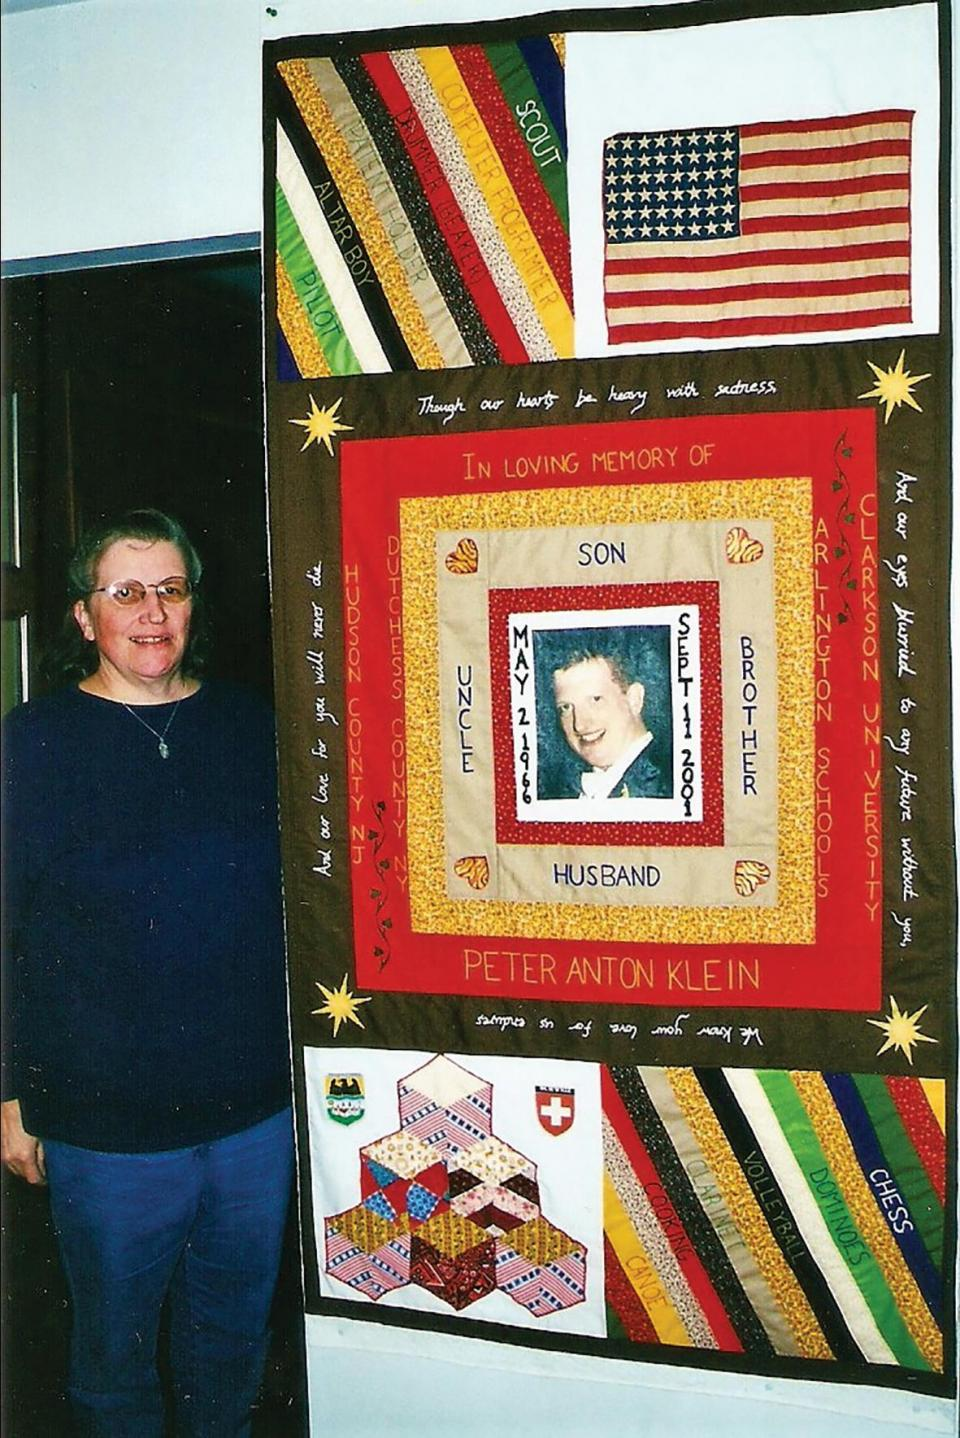 Ruth Klein posing beside the quilt she crafted in memory of her son Peter, who died during the September 11 attacks.